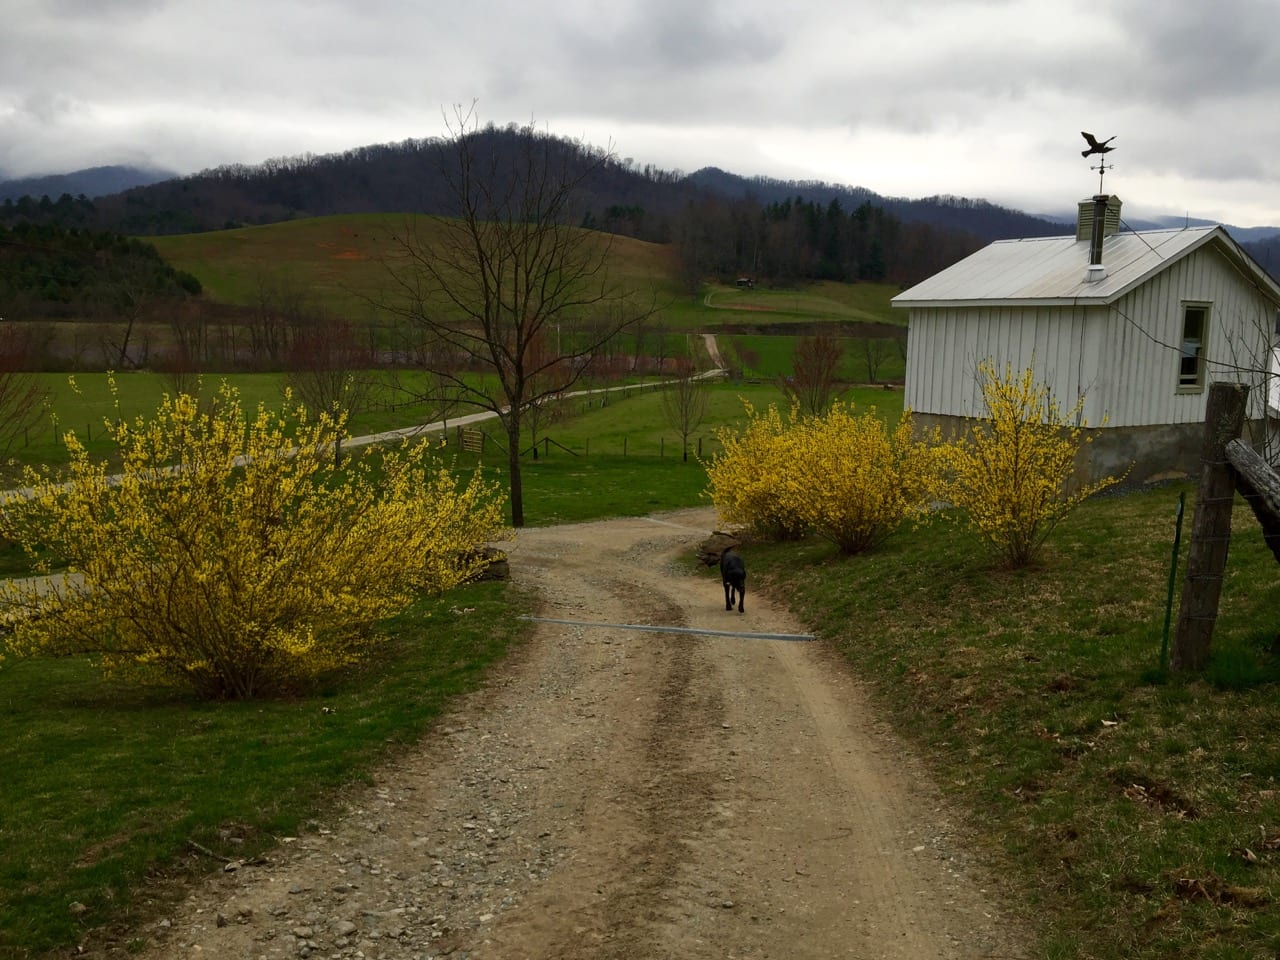 farm photo with bird flying and dog walking on road